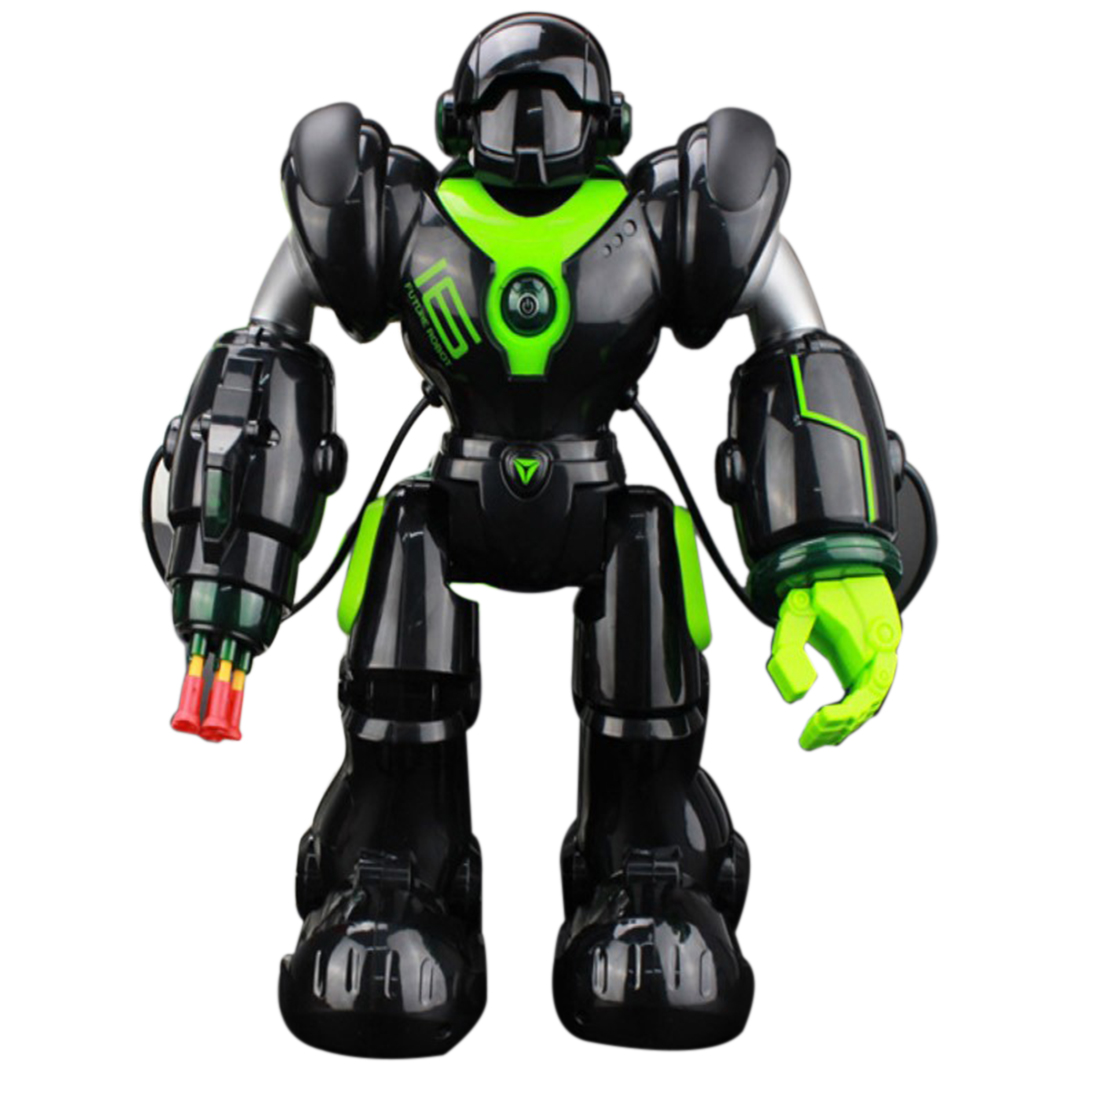 2019 New RC Machinery Robot Toys With Programming Shooting Dancing Battle Functions For Children   Black/White